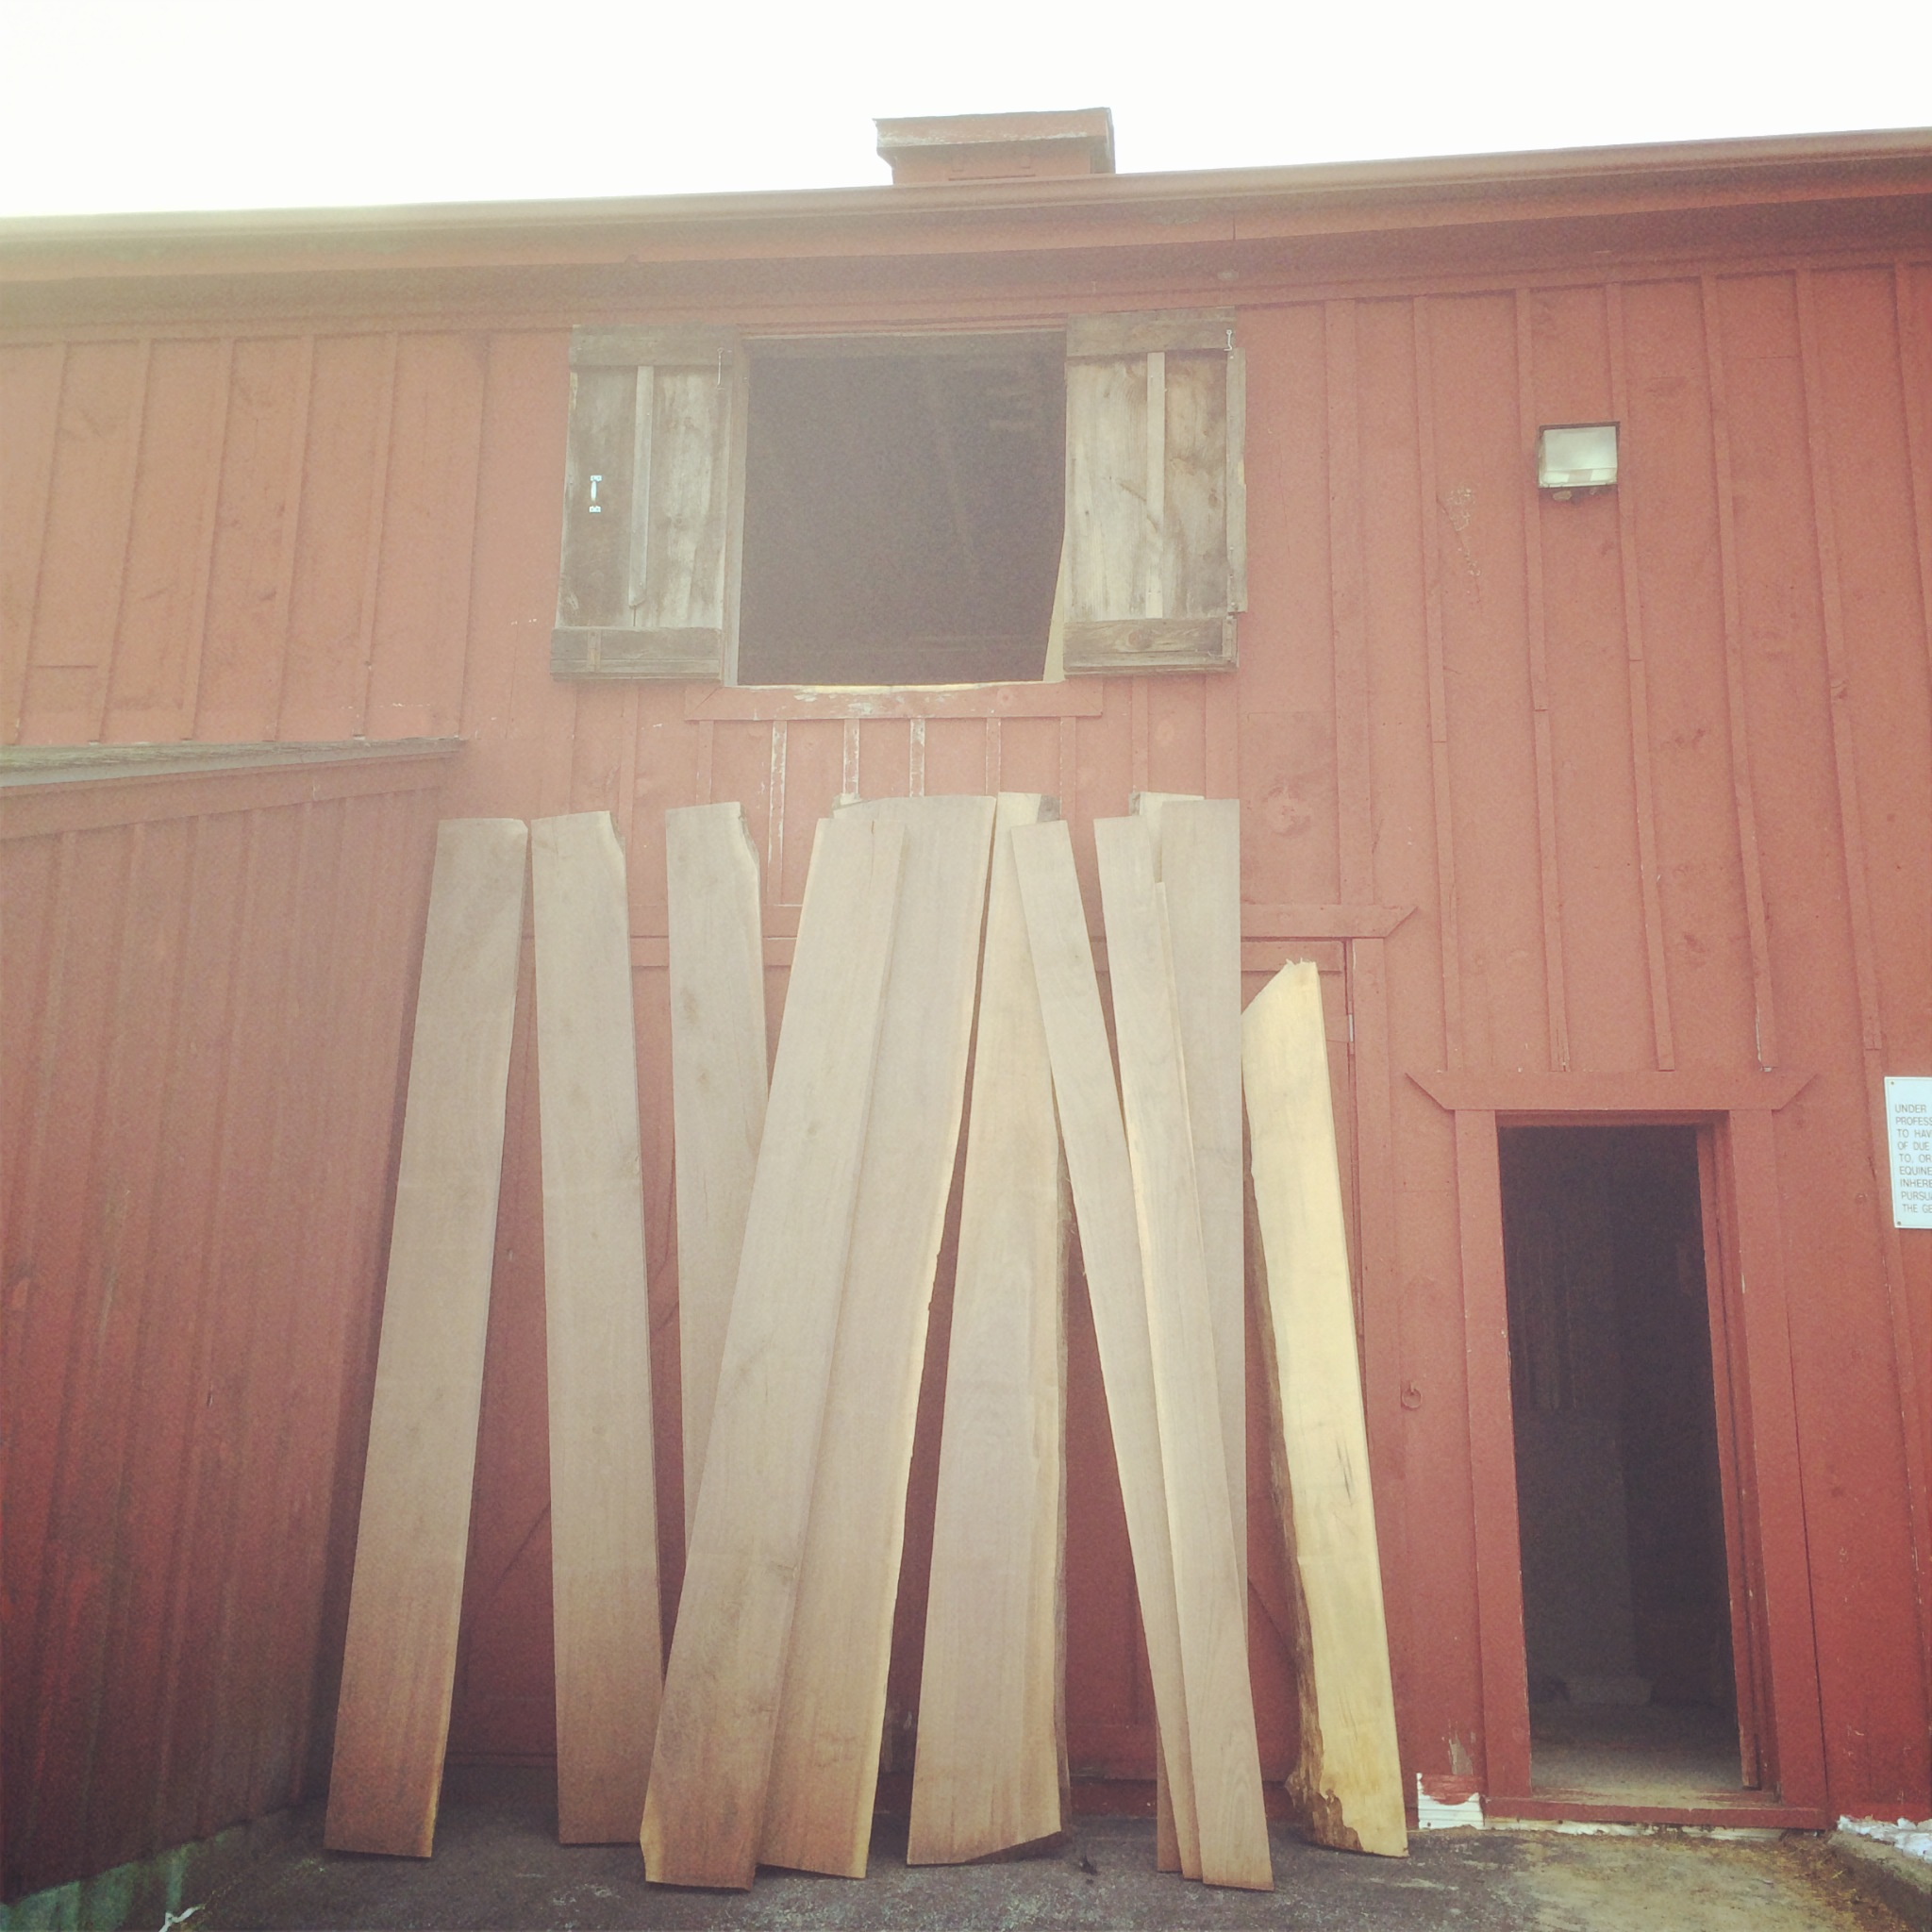 "The search always starts at the Sawmill for me. Here you can see a fairly large amount of Black Walnut, all of which is from Coventry RI. The barn door was made from two large boards on the far left. We resawed one of the boards down to 3/4"", which became the panel. The other board was ripped down the middle and cut into 4 separate sections to make the frame of the door."